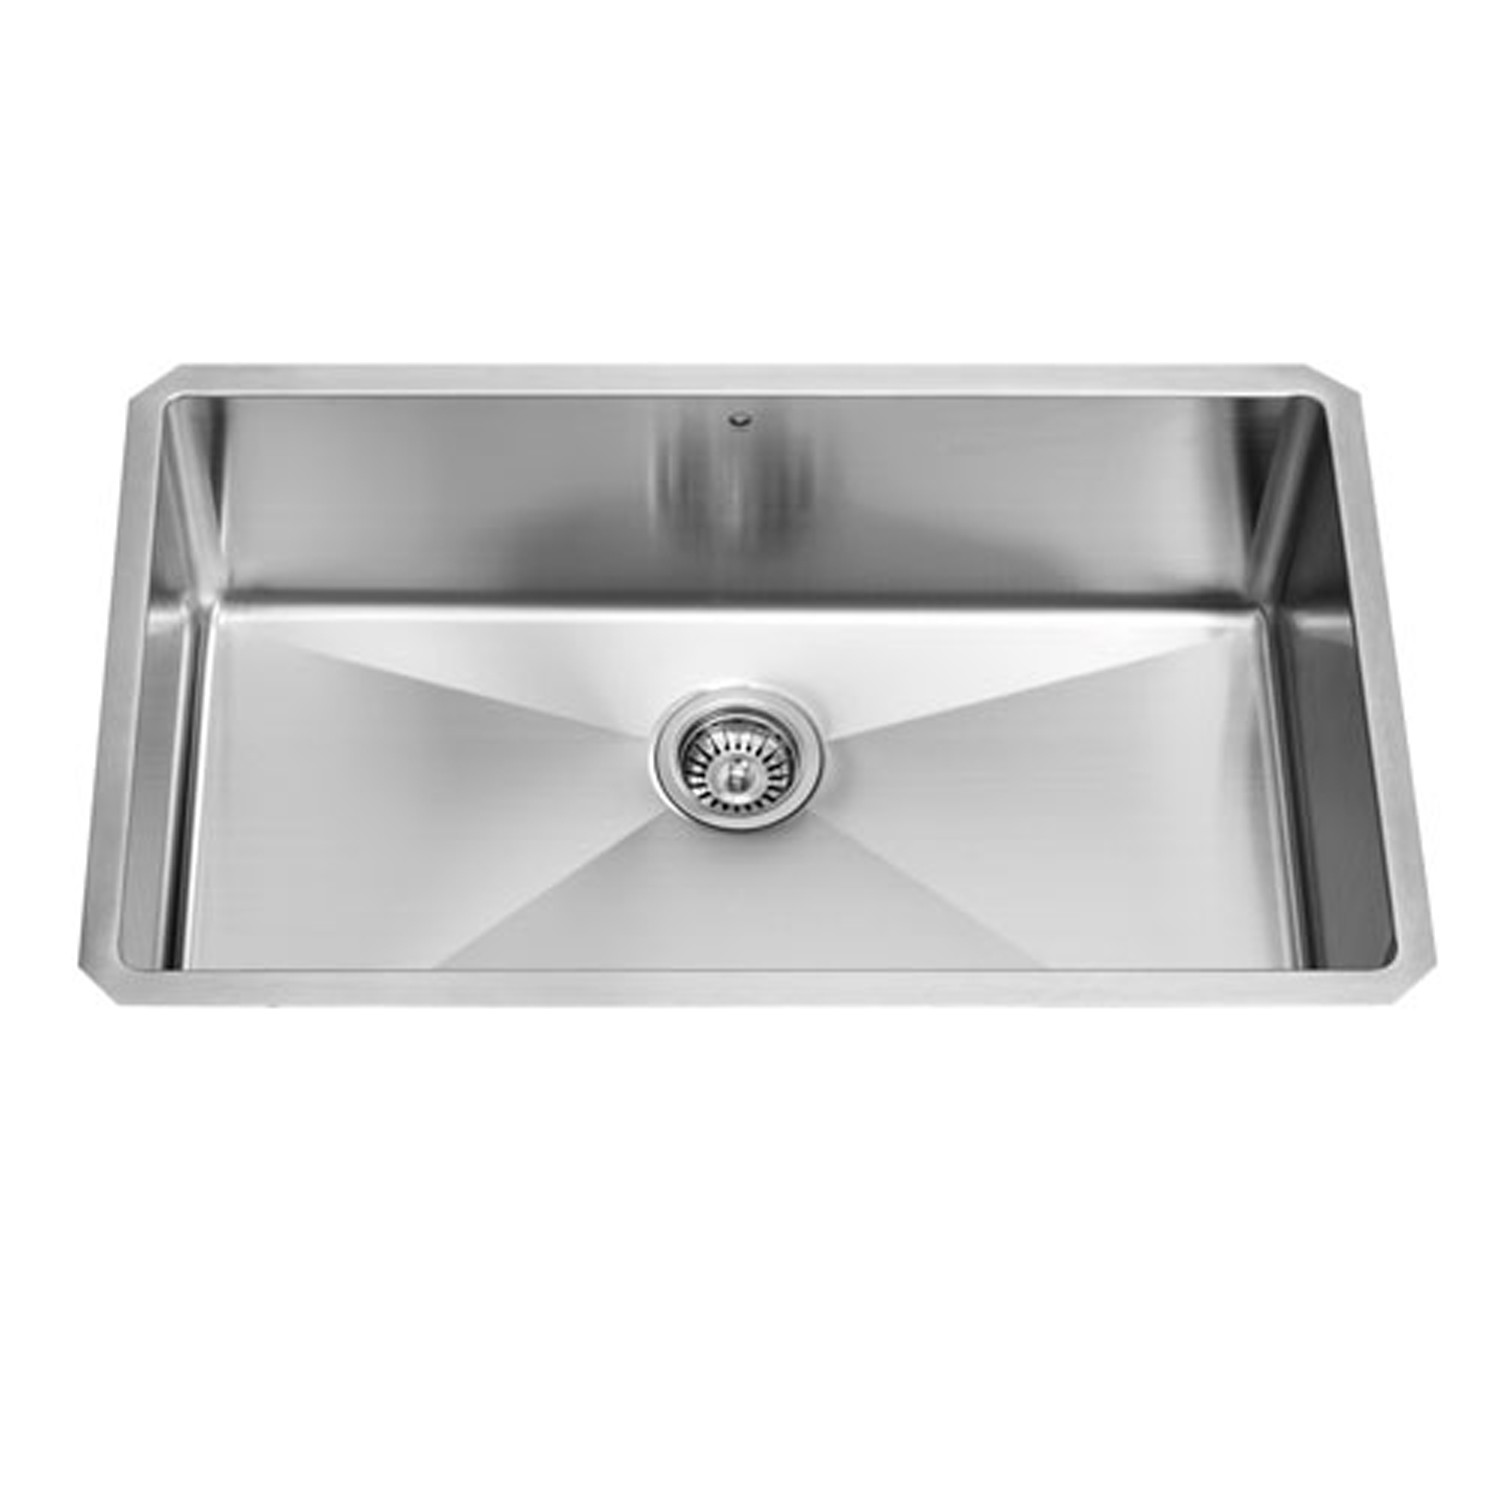 Vigo VGR3219C 30'' Single Bowl Traditional Kitchen Sink